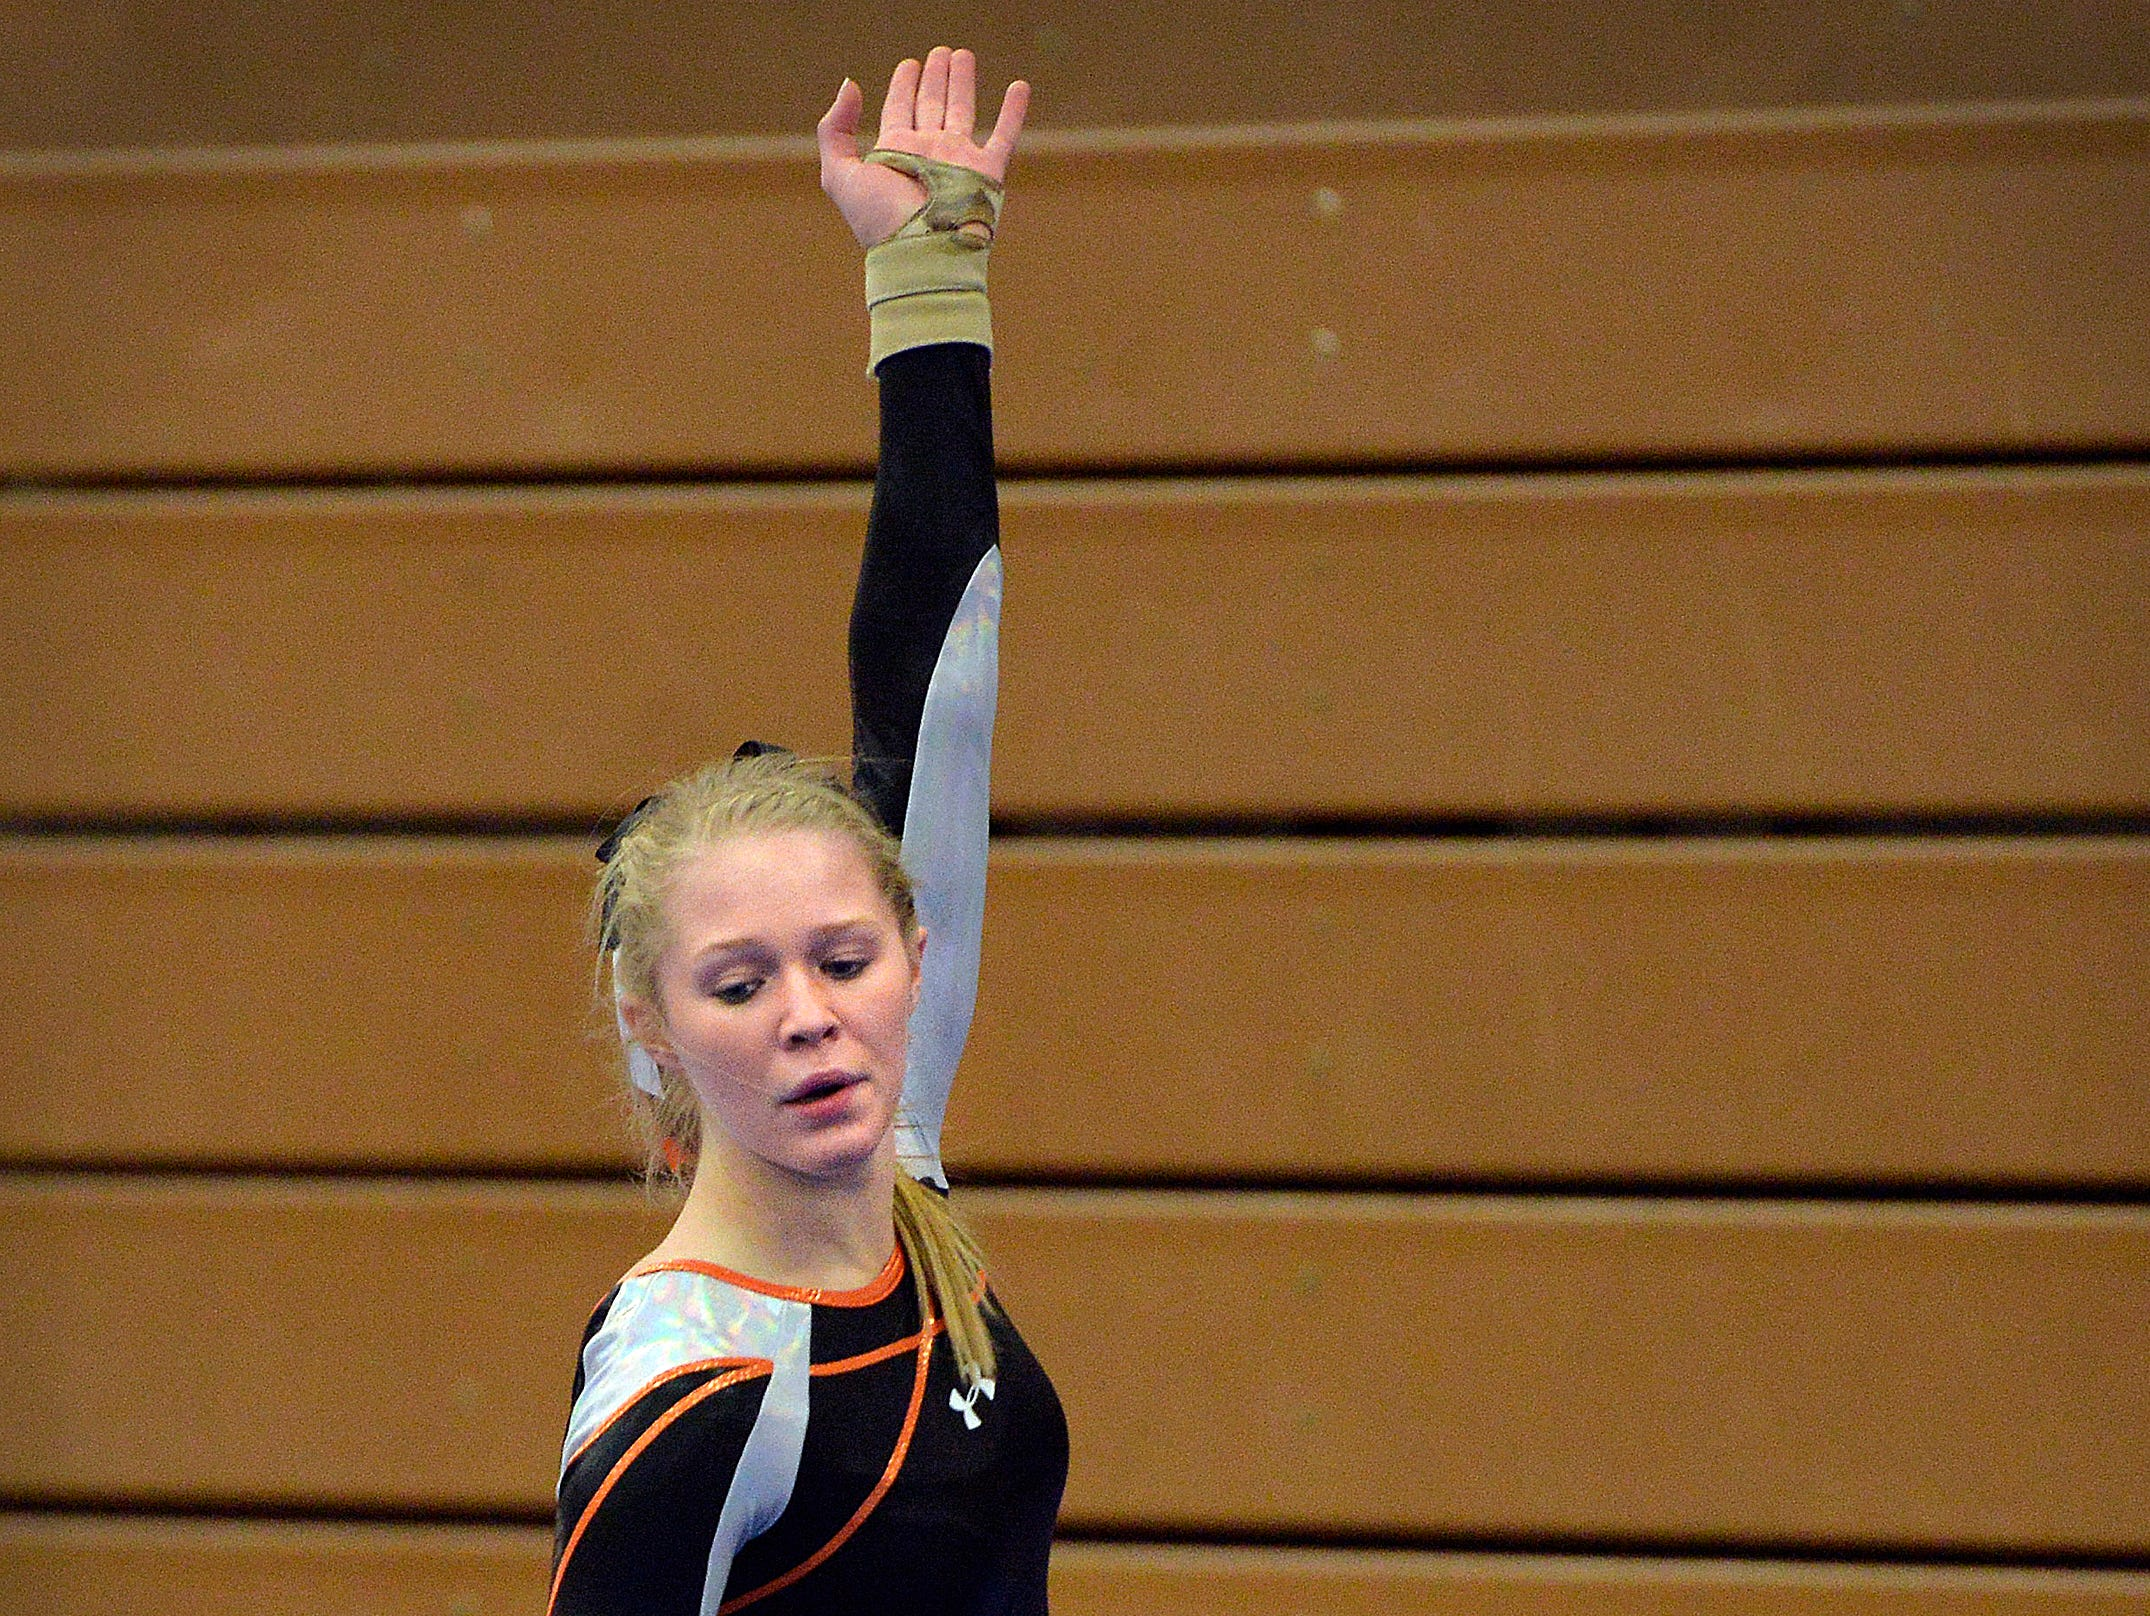 St. Cloud Tech gymnast Kalley Thompson begins her floor exercise routine Saturday, Dec. 5 during the St. Cloud Apollo Gymnastics Invite.